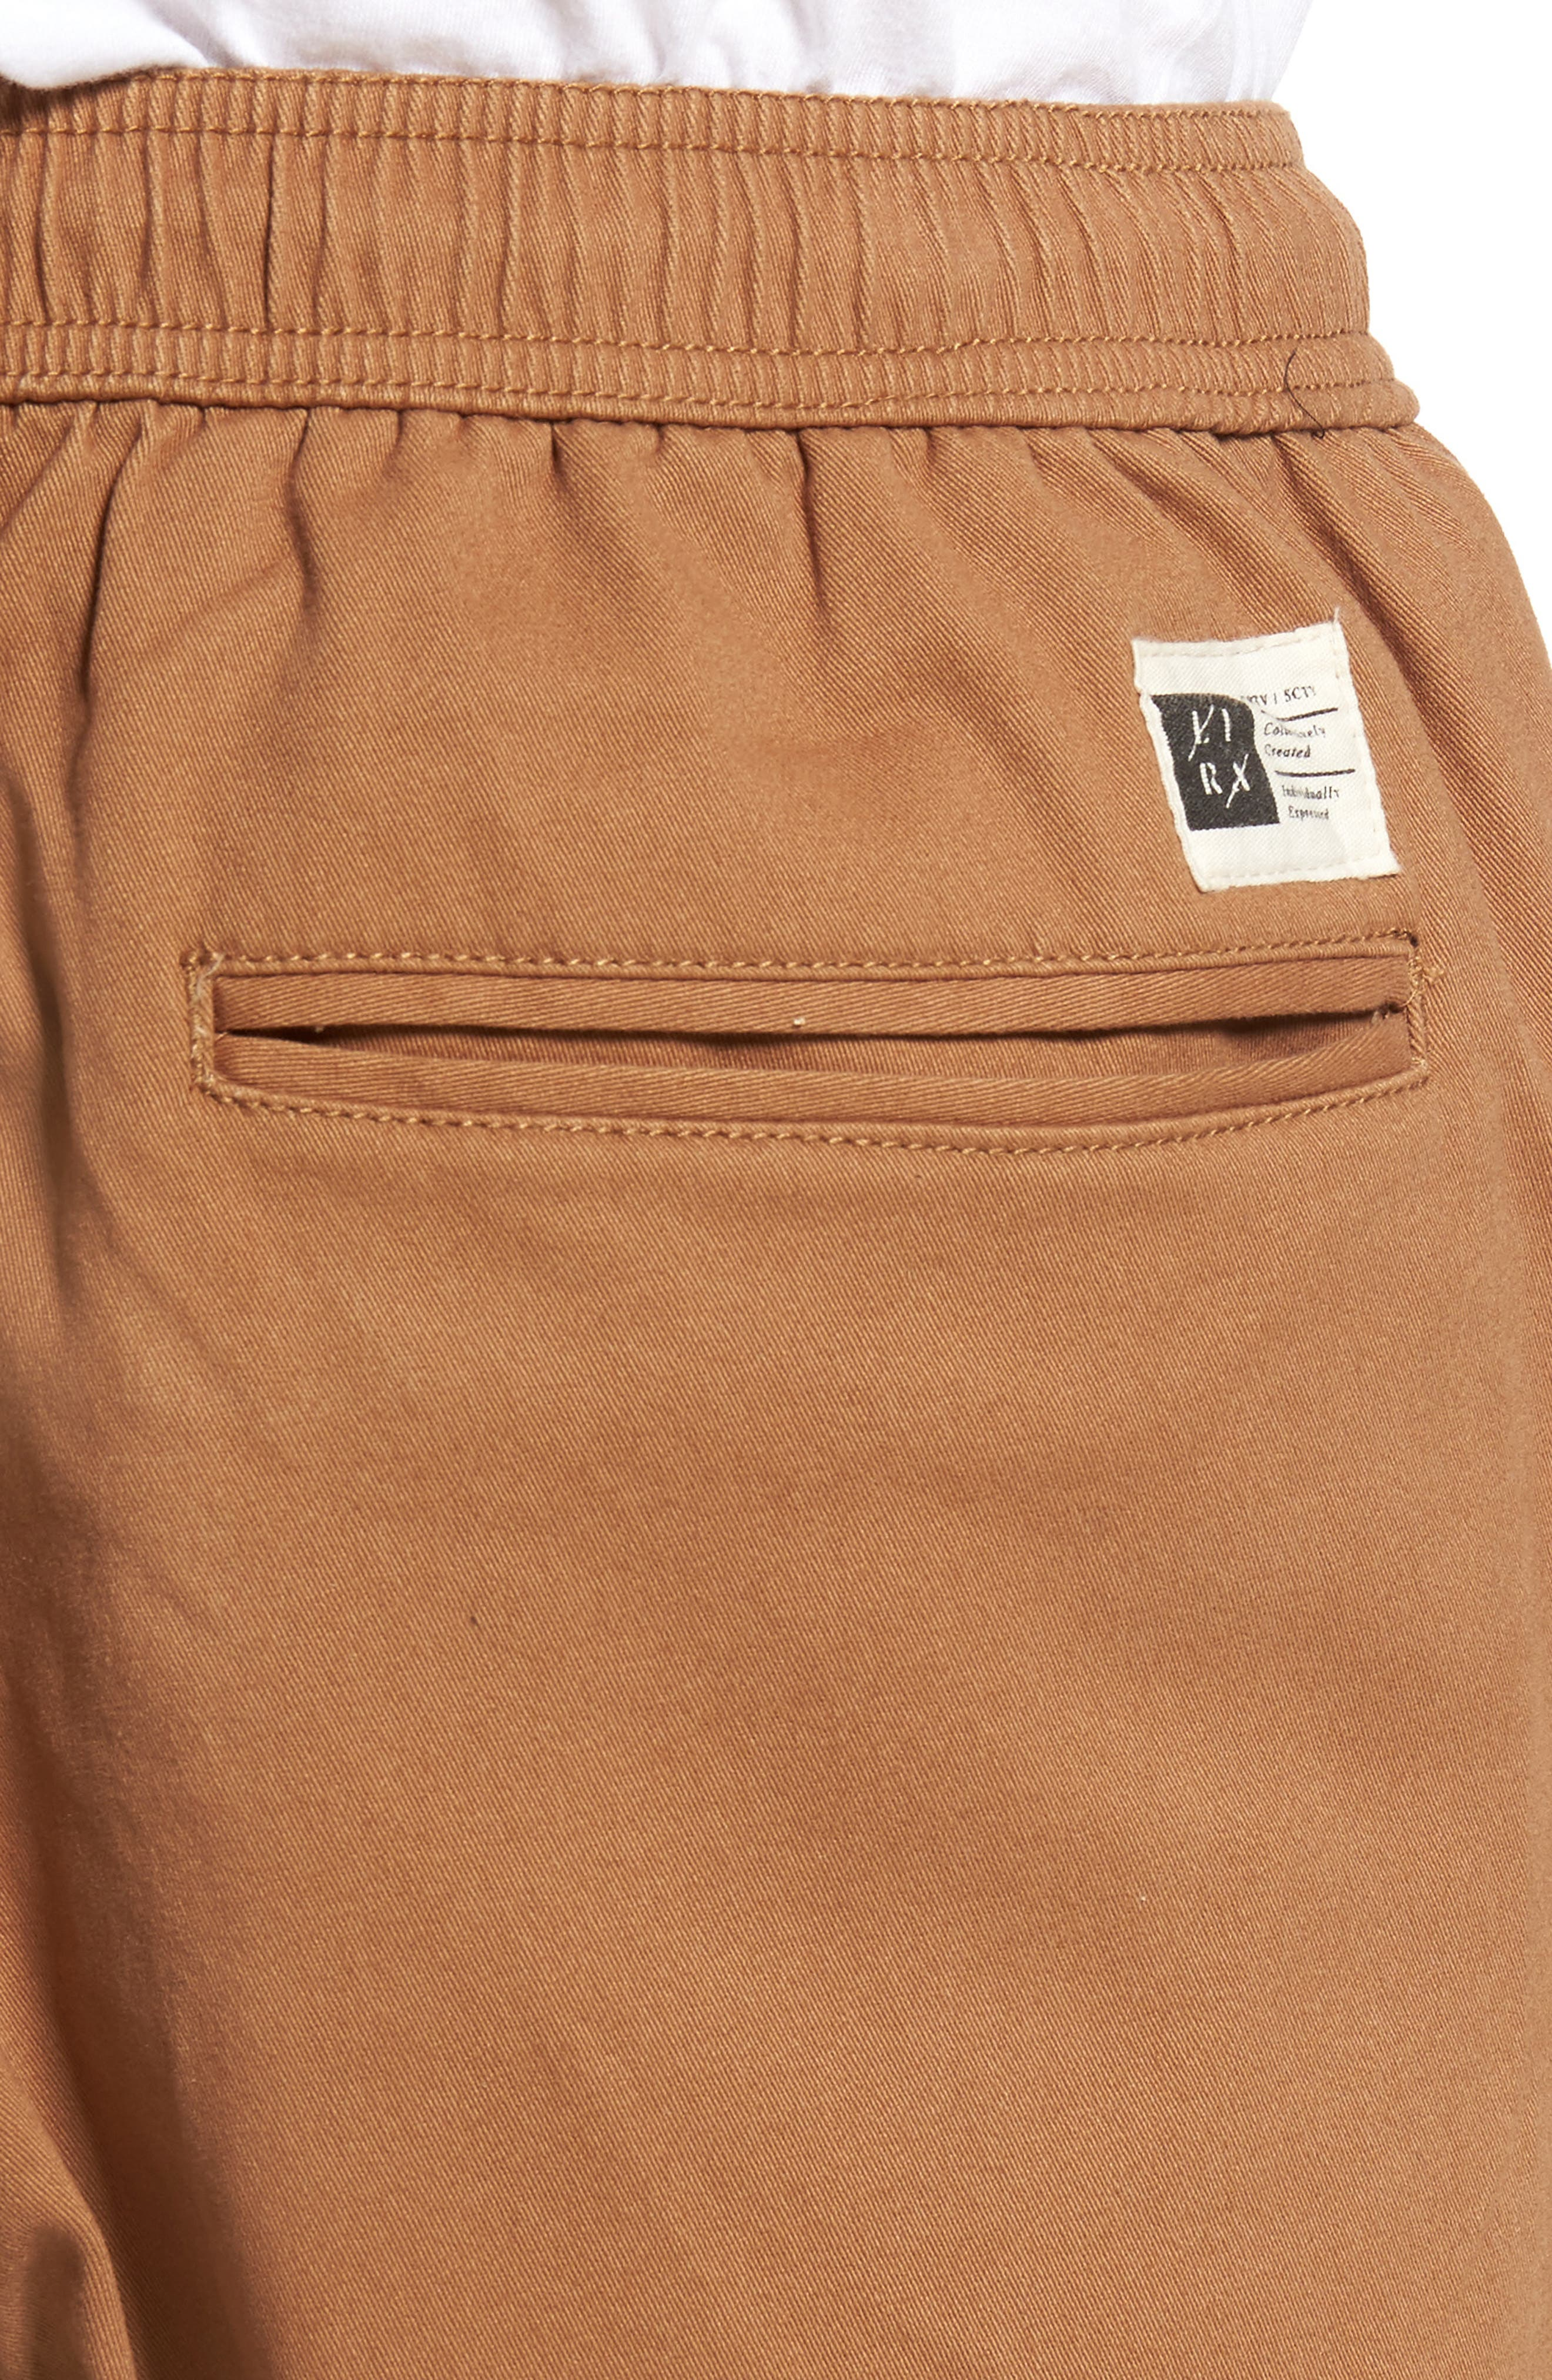 Weekend Jogger Pants,                             Alternate thumbnail 27, color,